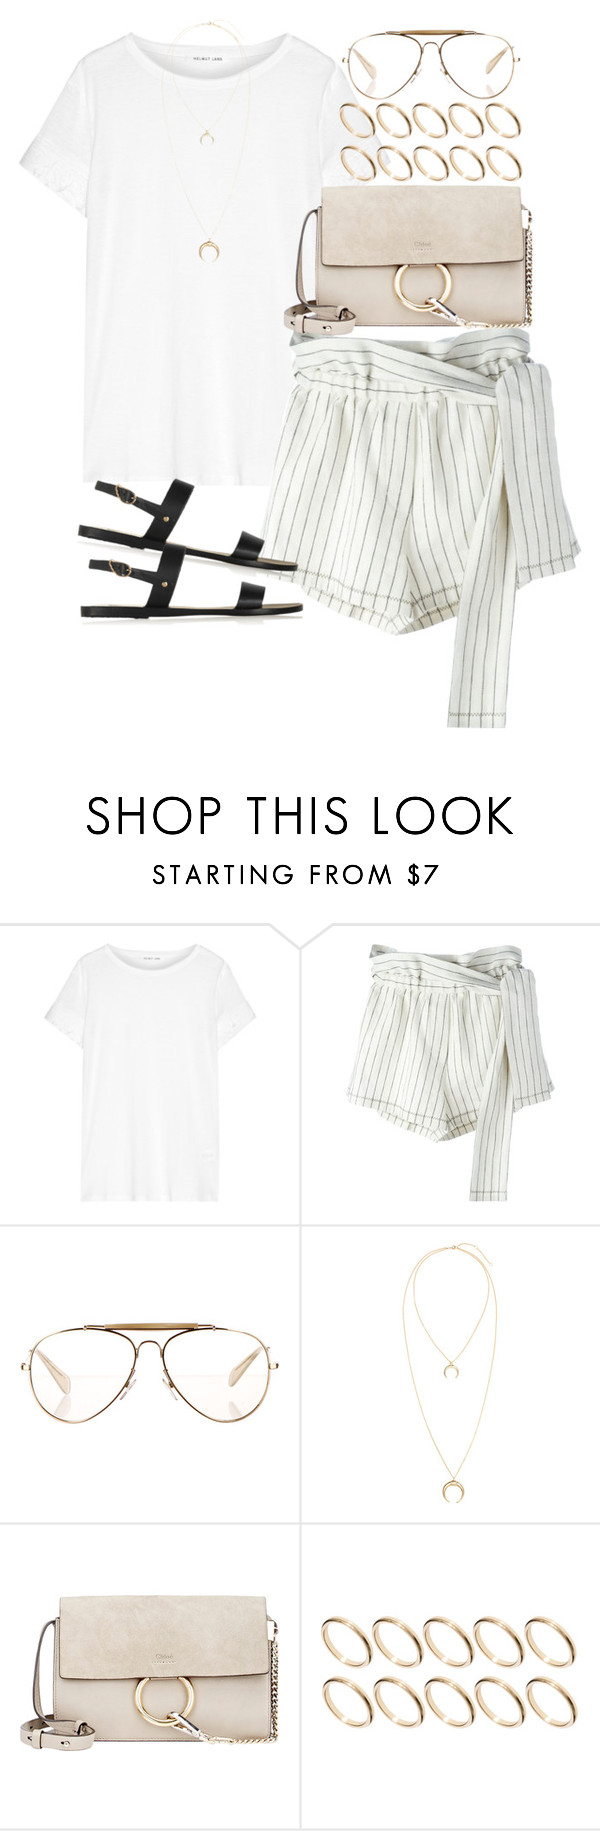 """Sin título #4166"" by hellomissapple ❤ liked on Polyvore featuring Helmut Lang, 3.1 Phillip Lim, CÉLINE, Chloé, ASOS and Ancient Greek Sandals"